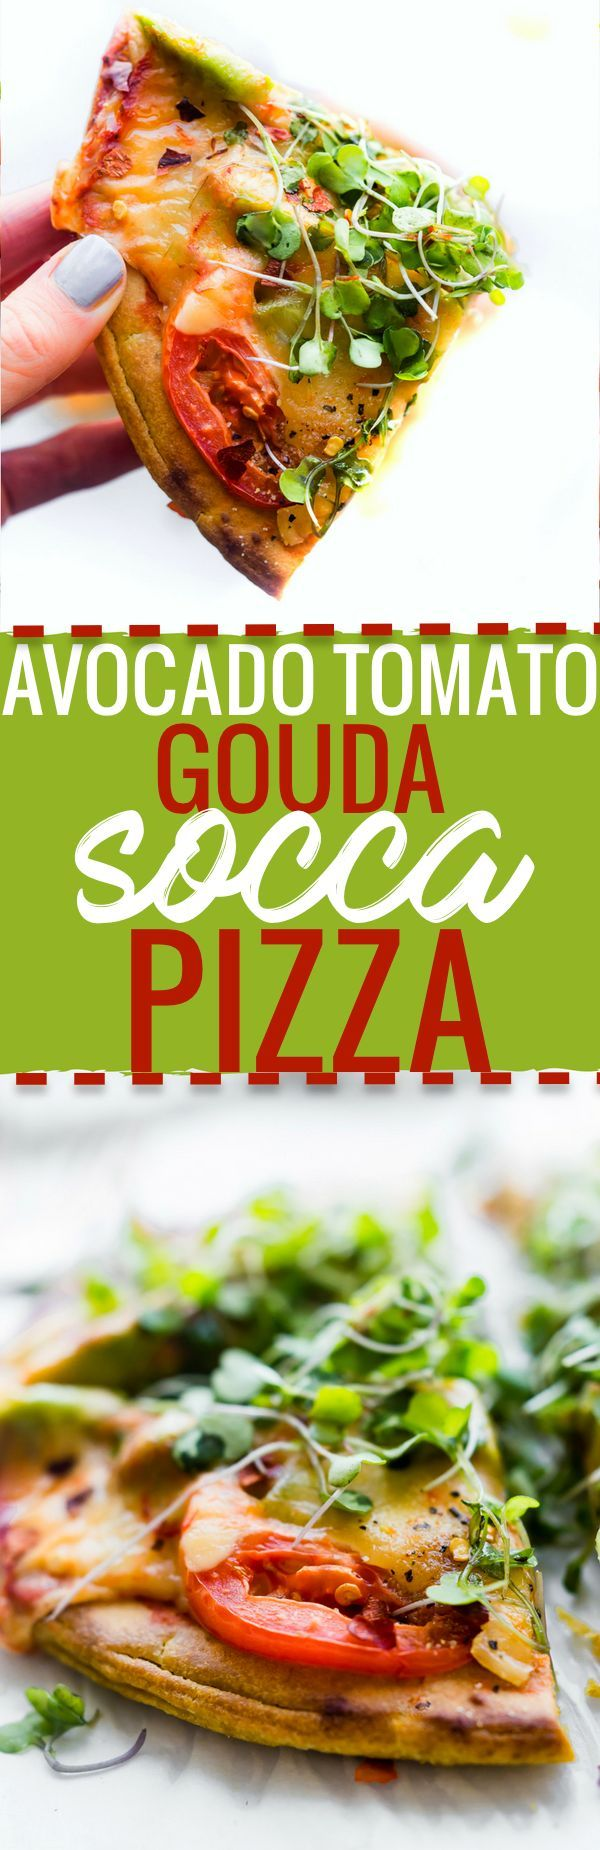 This Avocado Tomato Gouda Socca Pizza recipe is gonna make you fall in love WITH pizza even more!Grain free, gluten free, Seriously easy to make, egg free, vegan option, delicious! http://www.cottercrunch.com